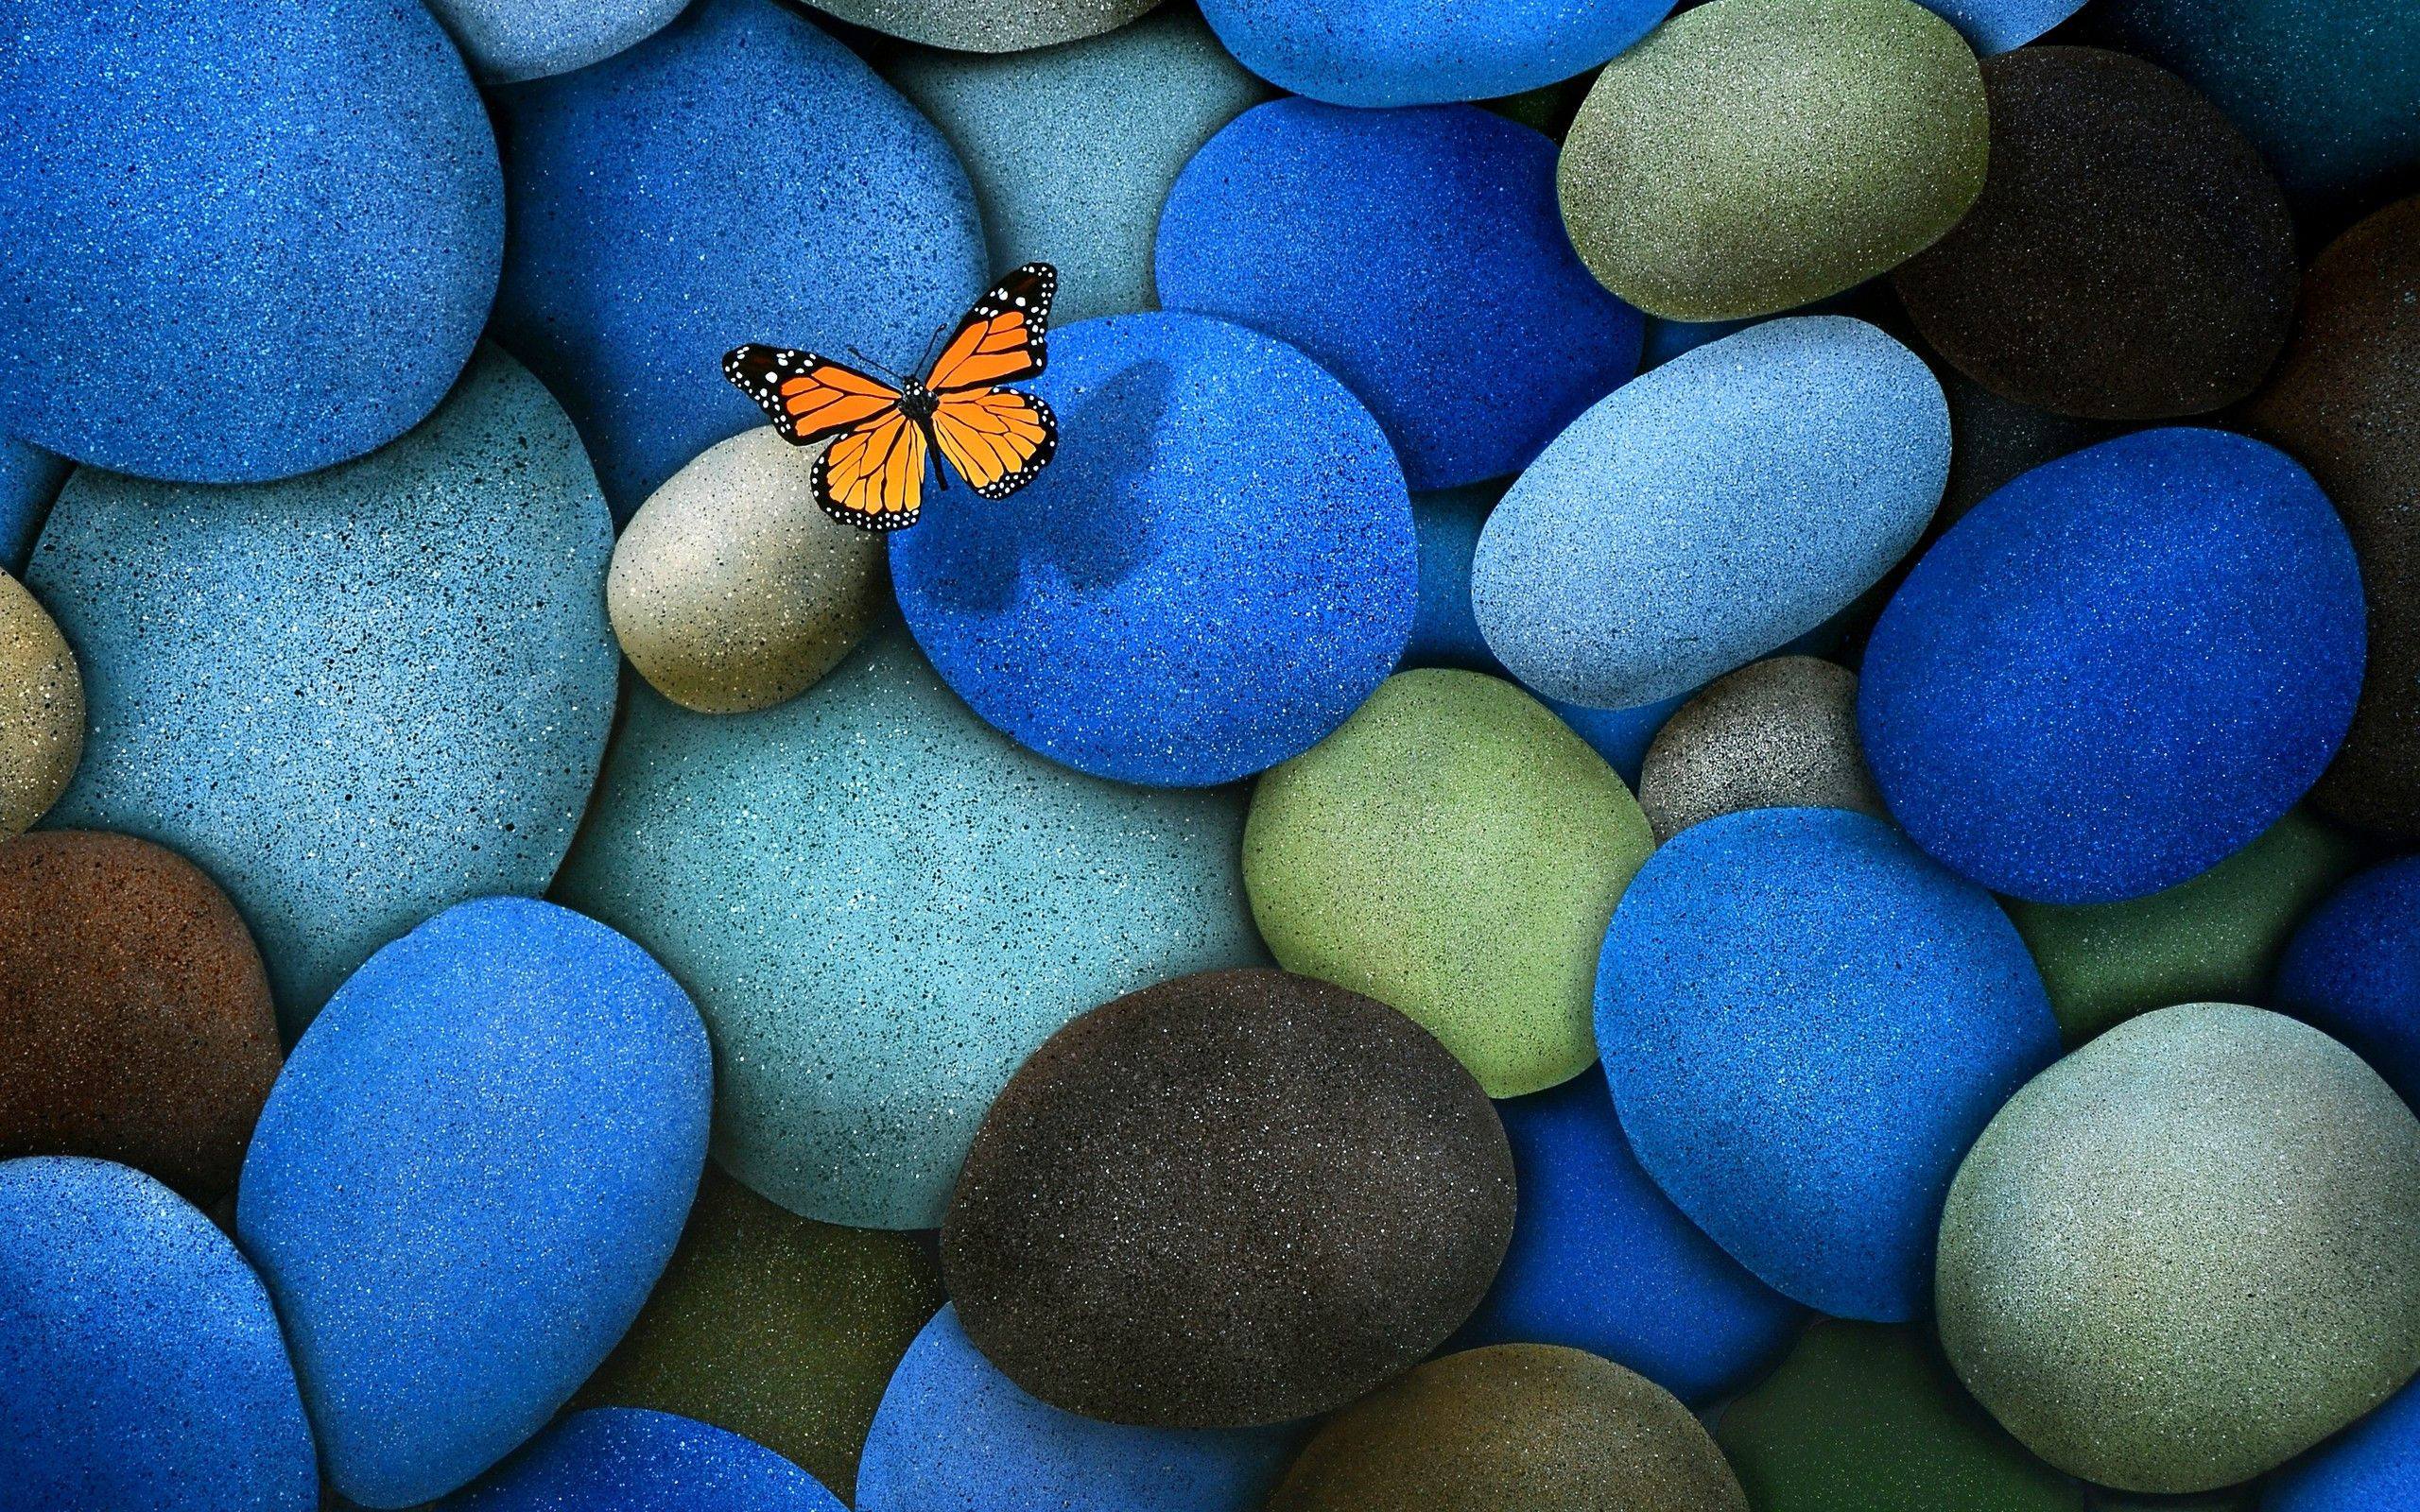 pics Butterfly On Blue Stones   Wallpaper 39212 EVERYTHING 2560x1600